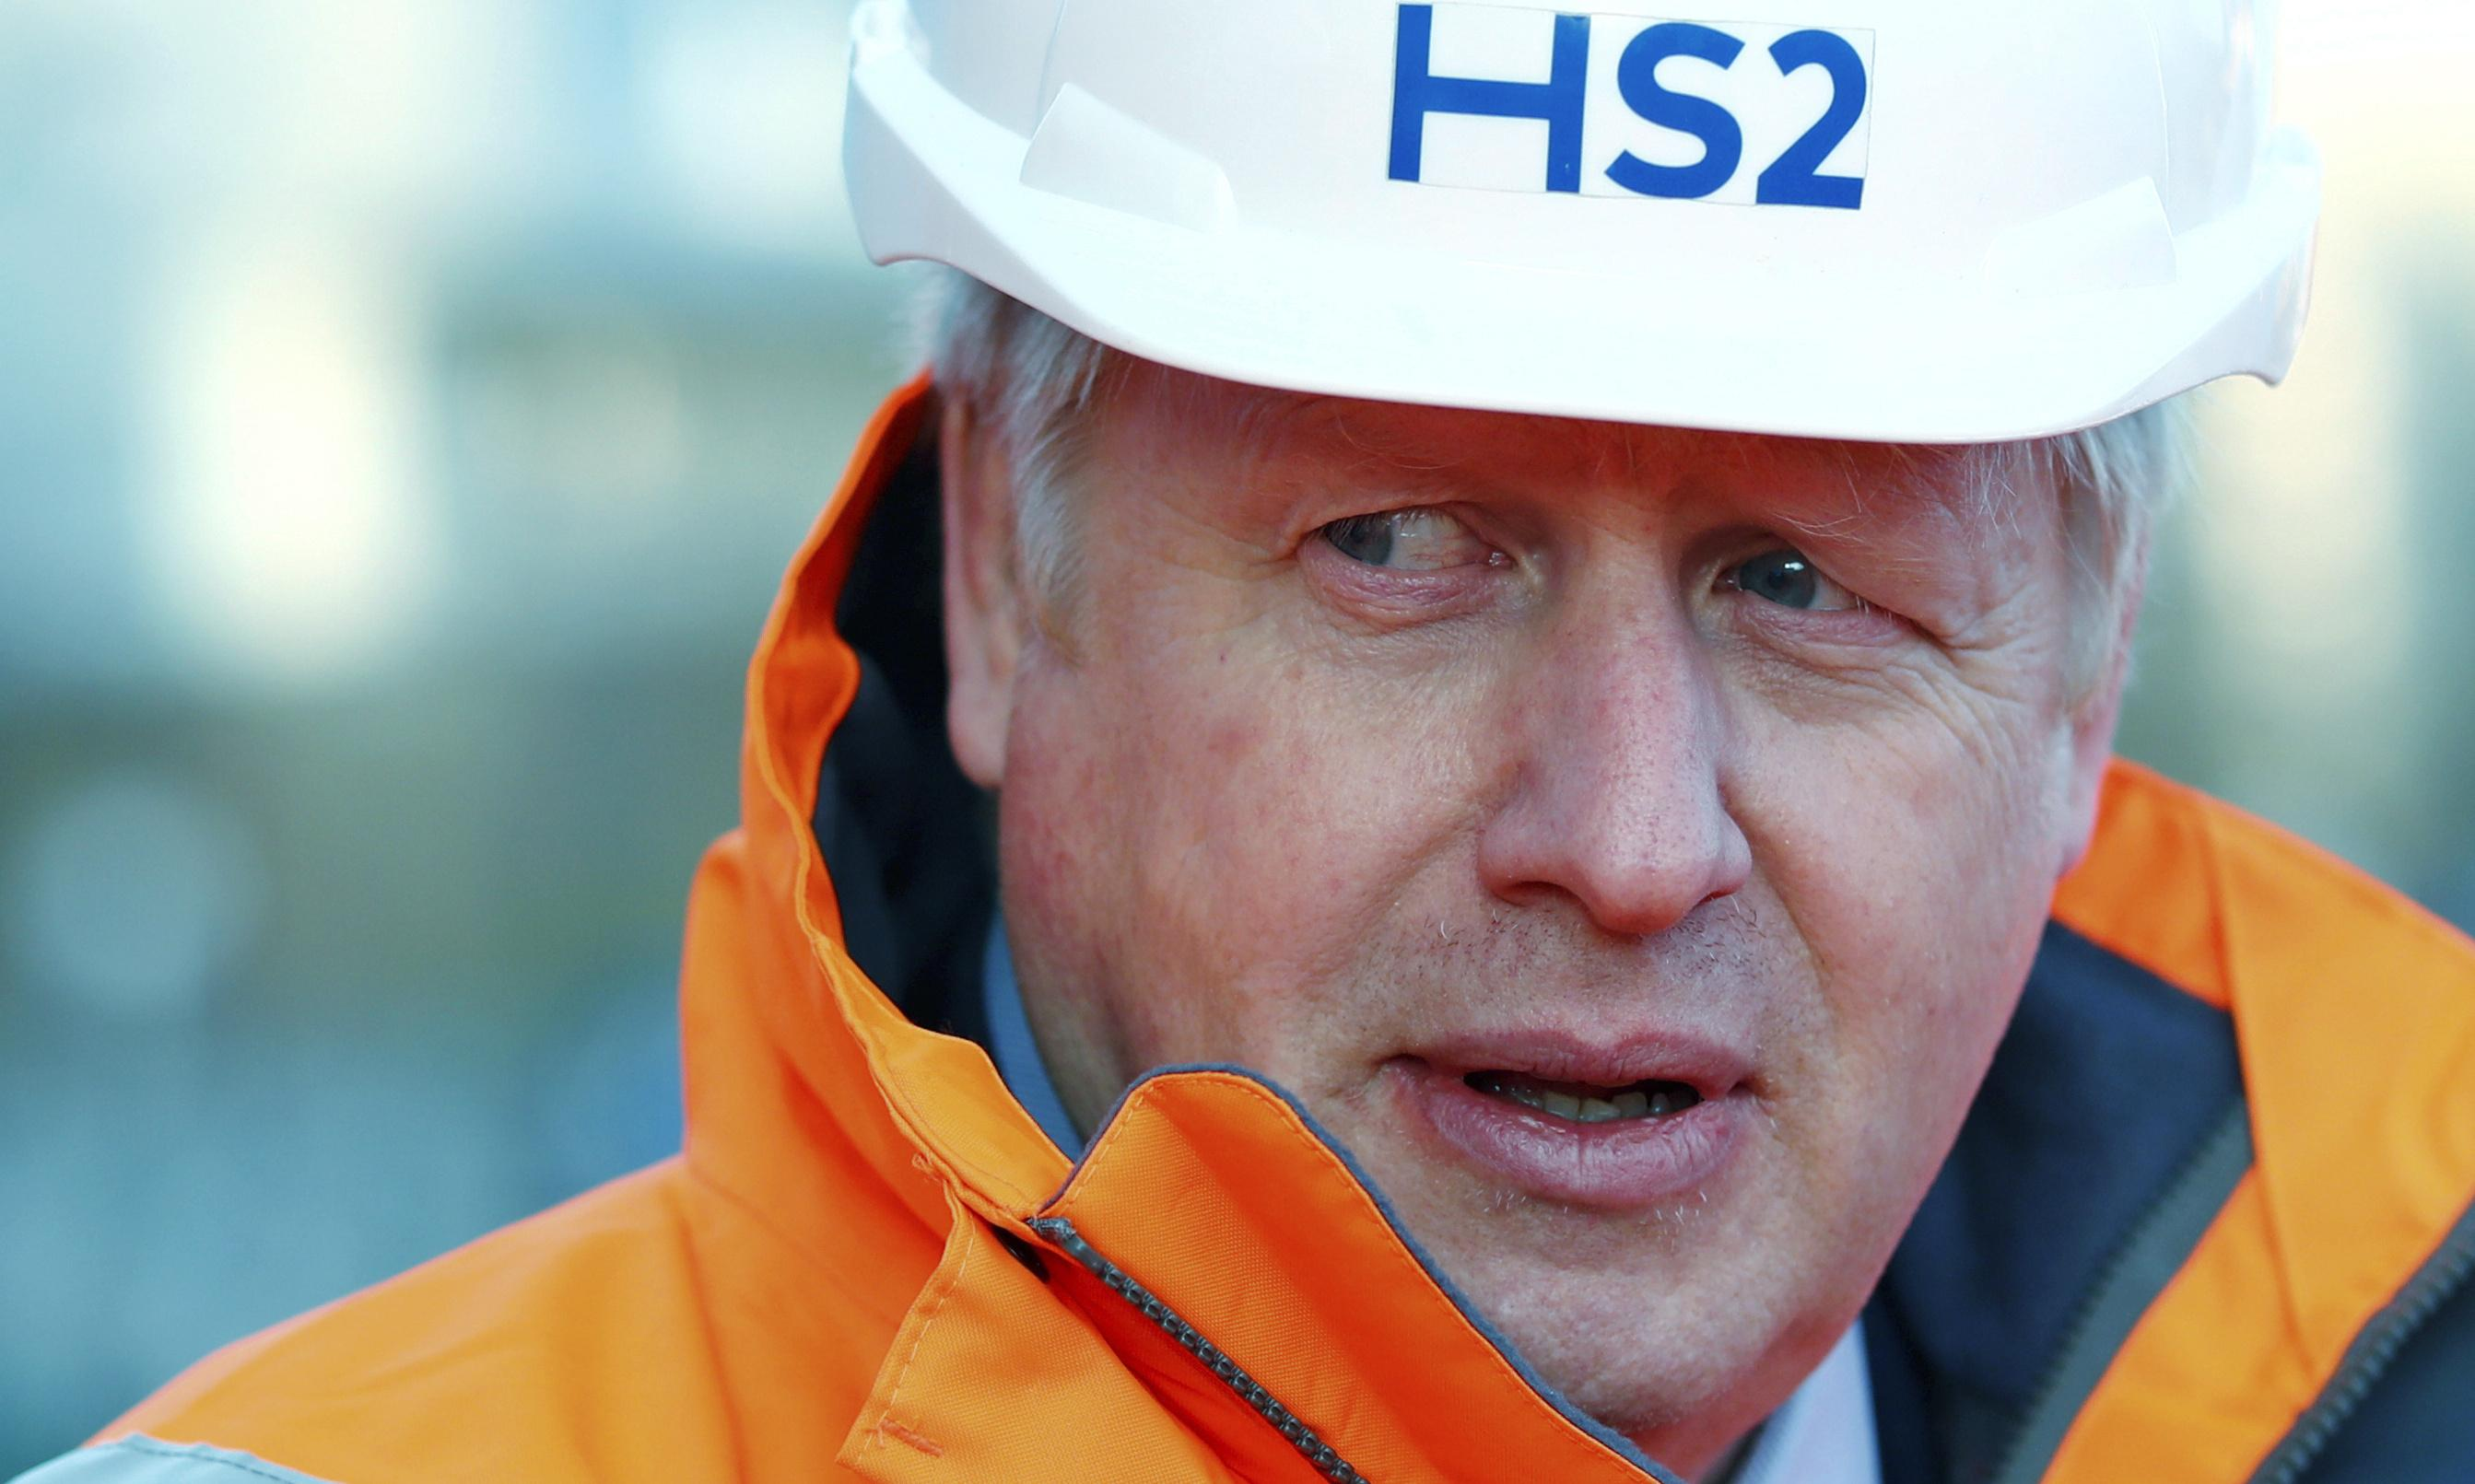 After giving HS2 the go-ahead, Boris Johnson can never again say there's no money